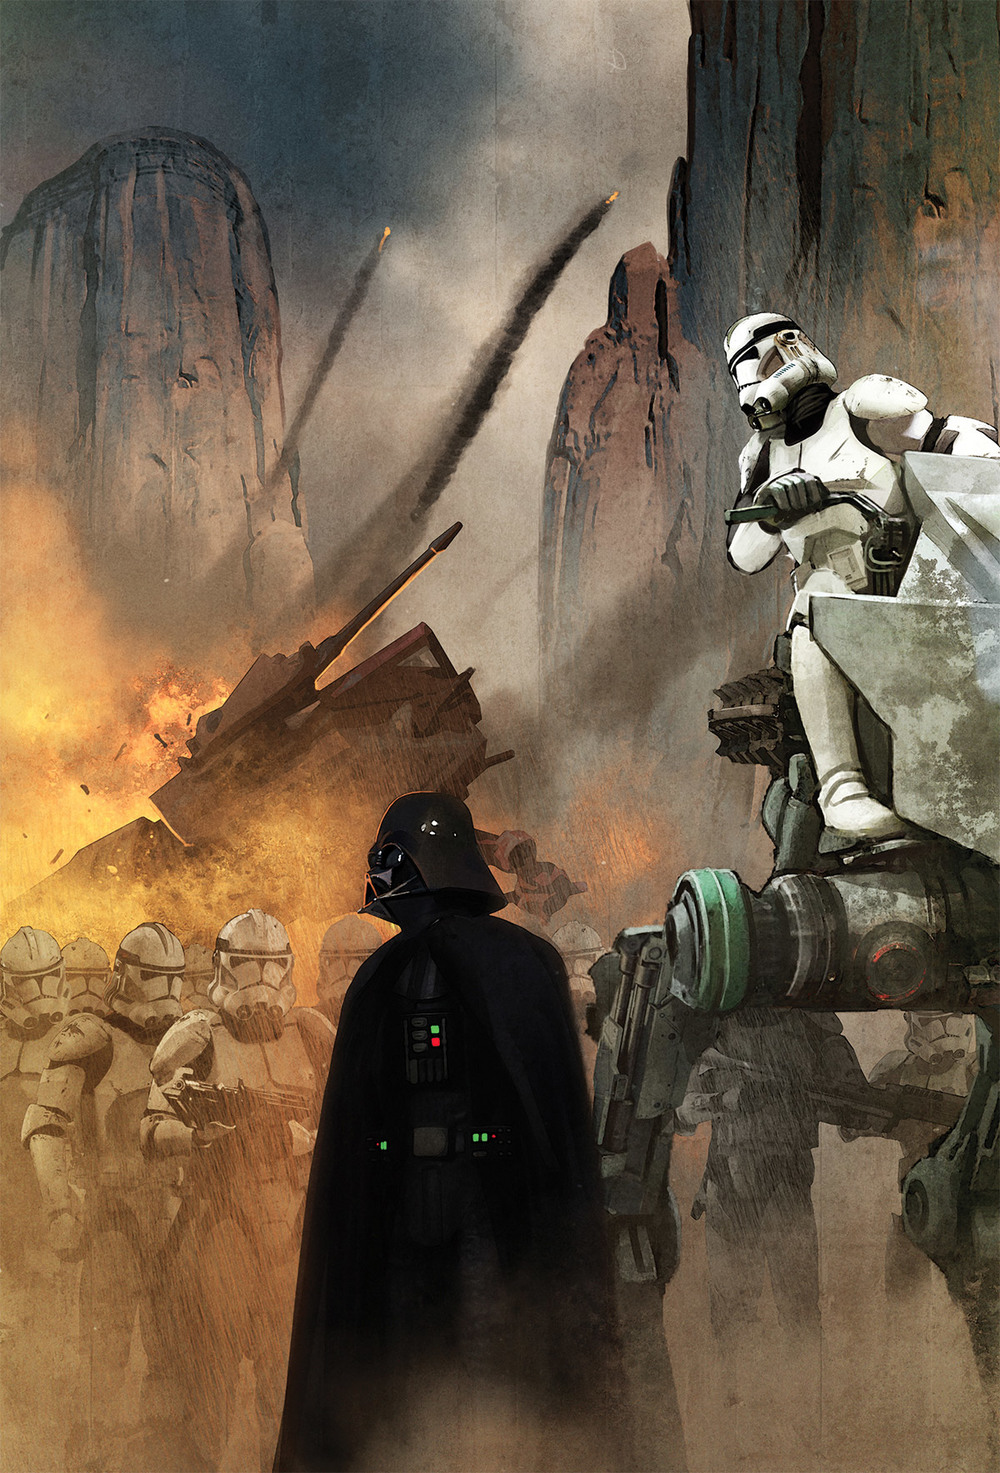 spectacular star wars covers from dark horse comics geektyrant. Black Bedroom Furniture Sets. Home Design Ideas